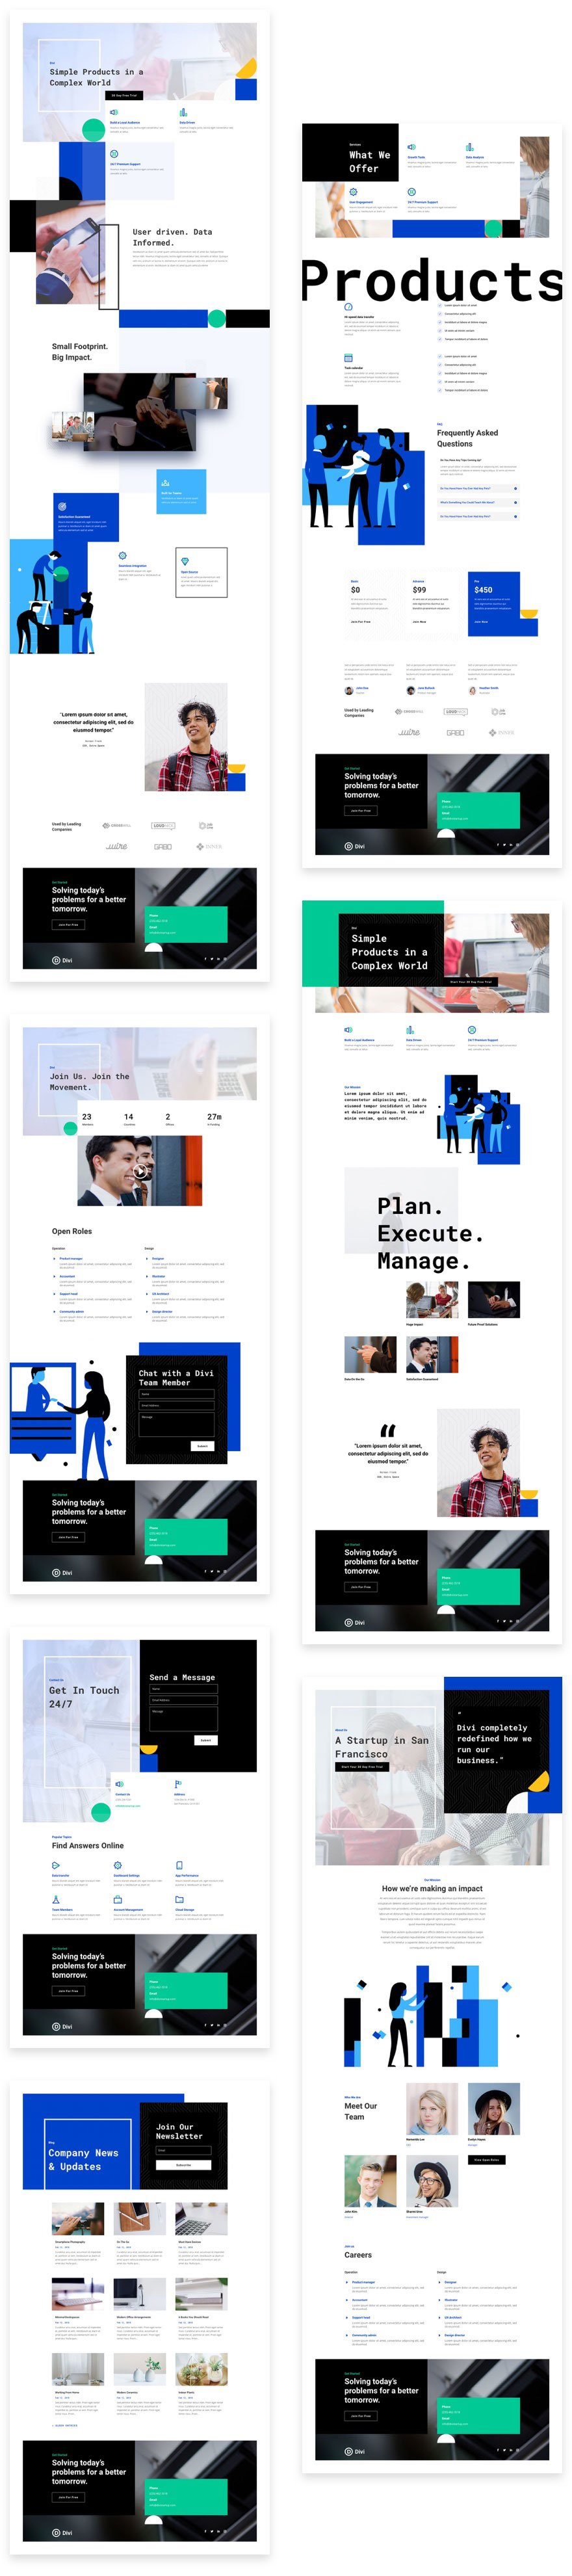 Divi Startup Layout Pack